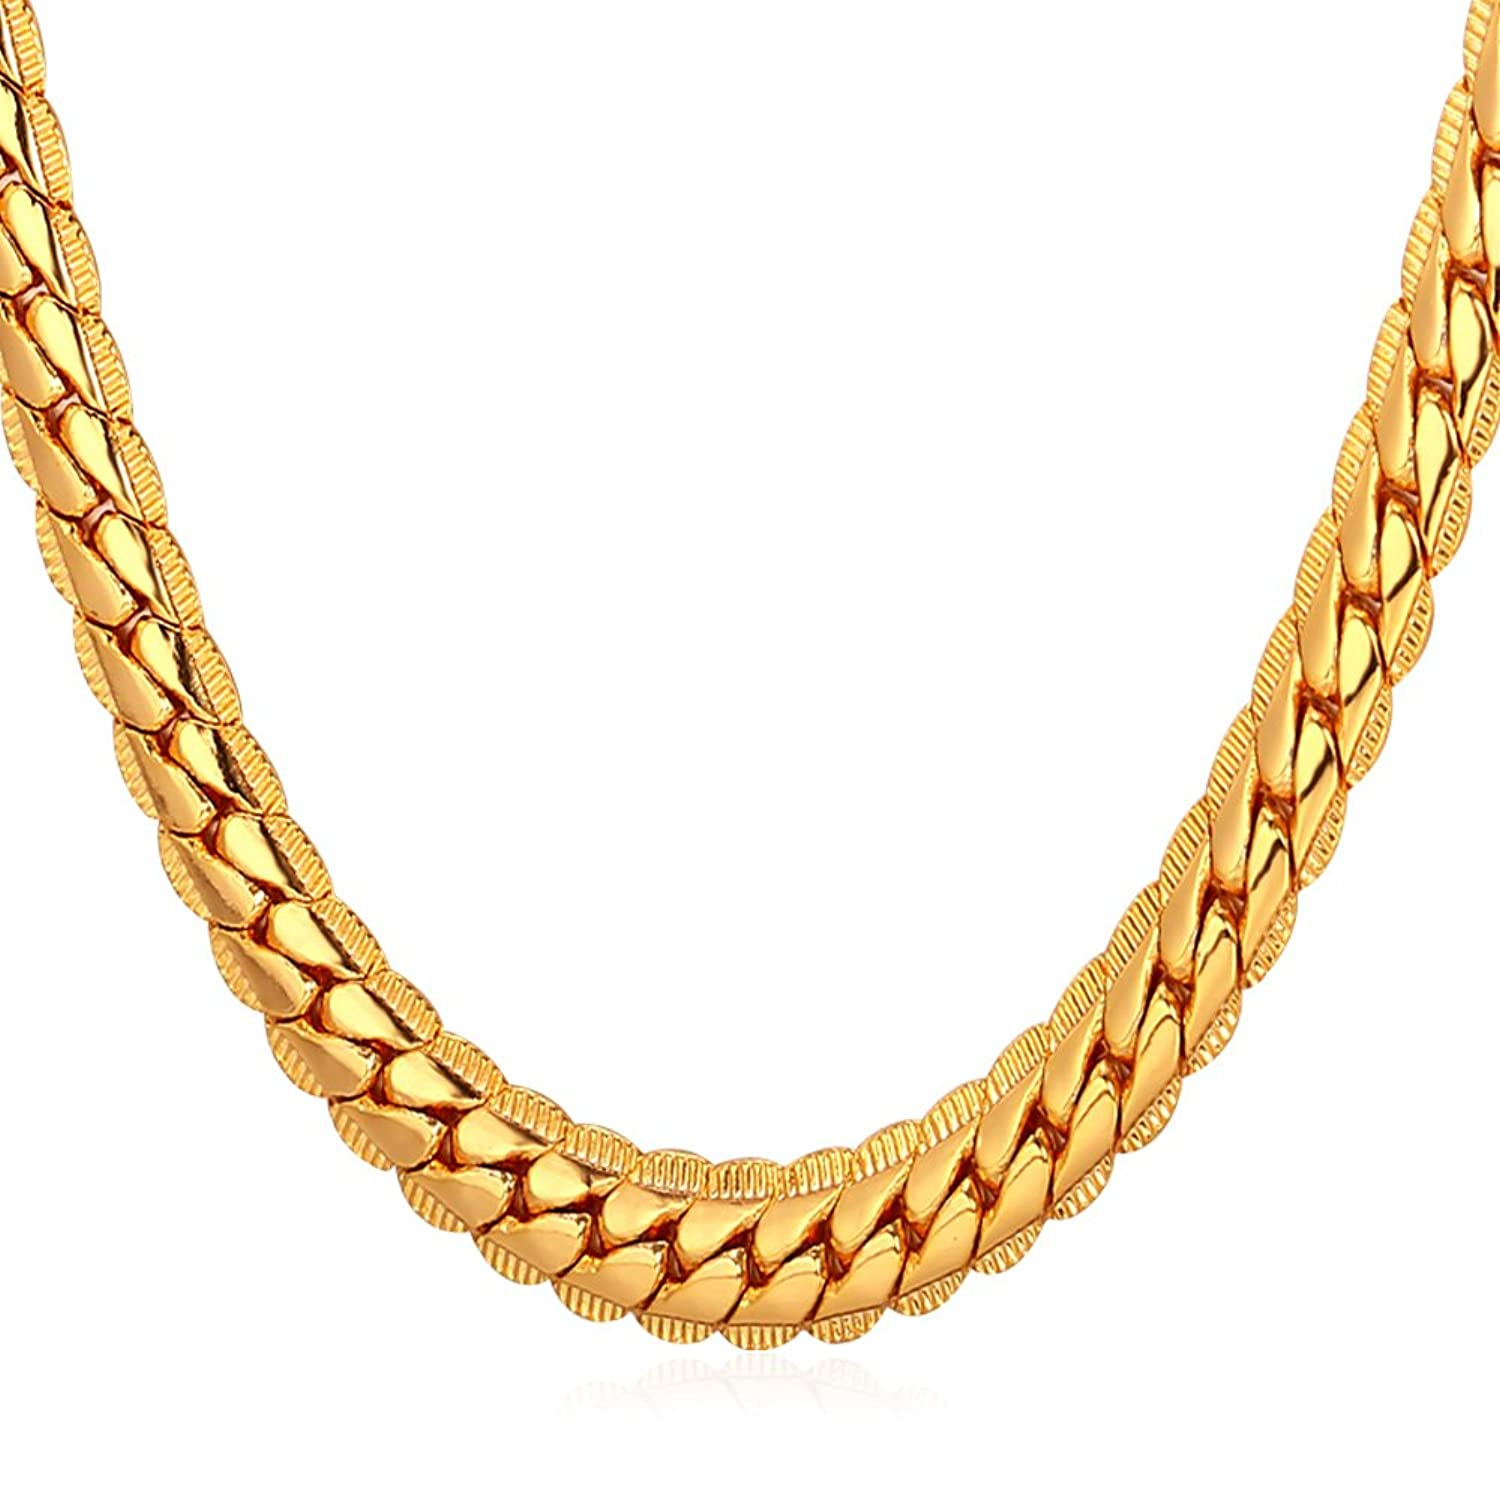 cm necklace chain snake en